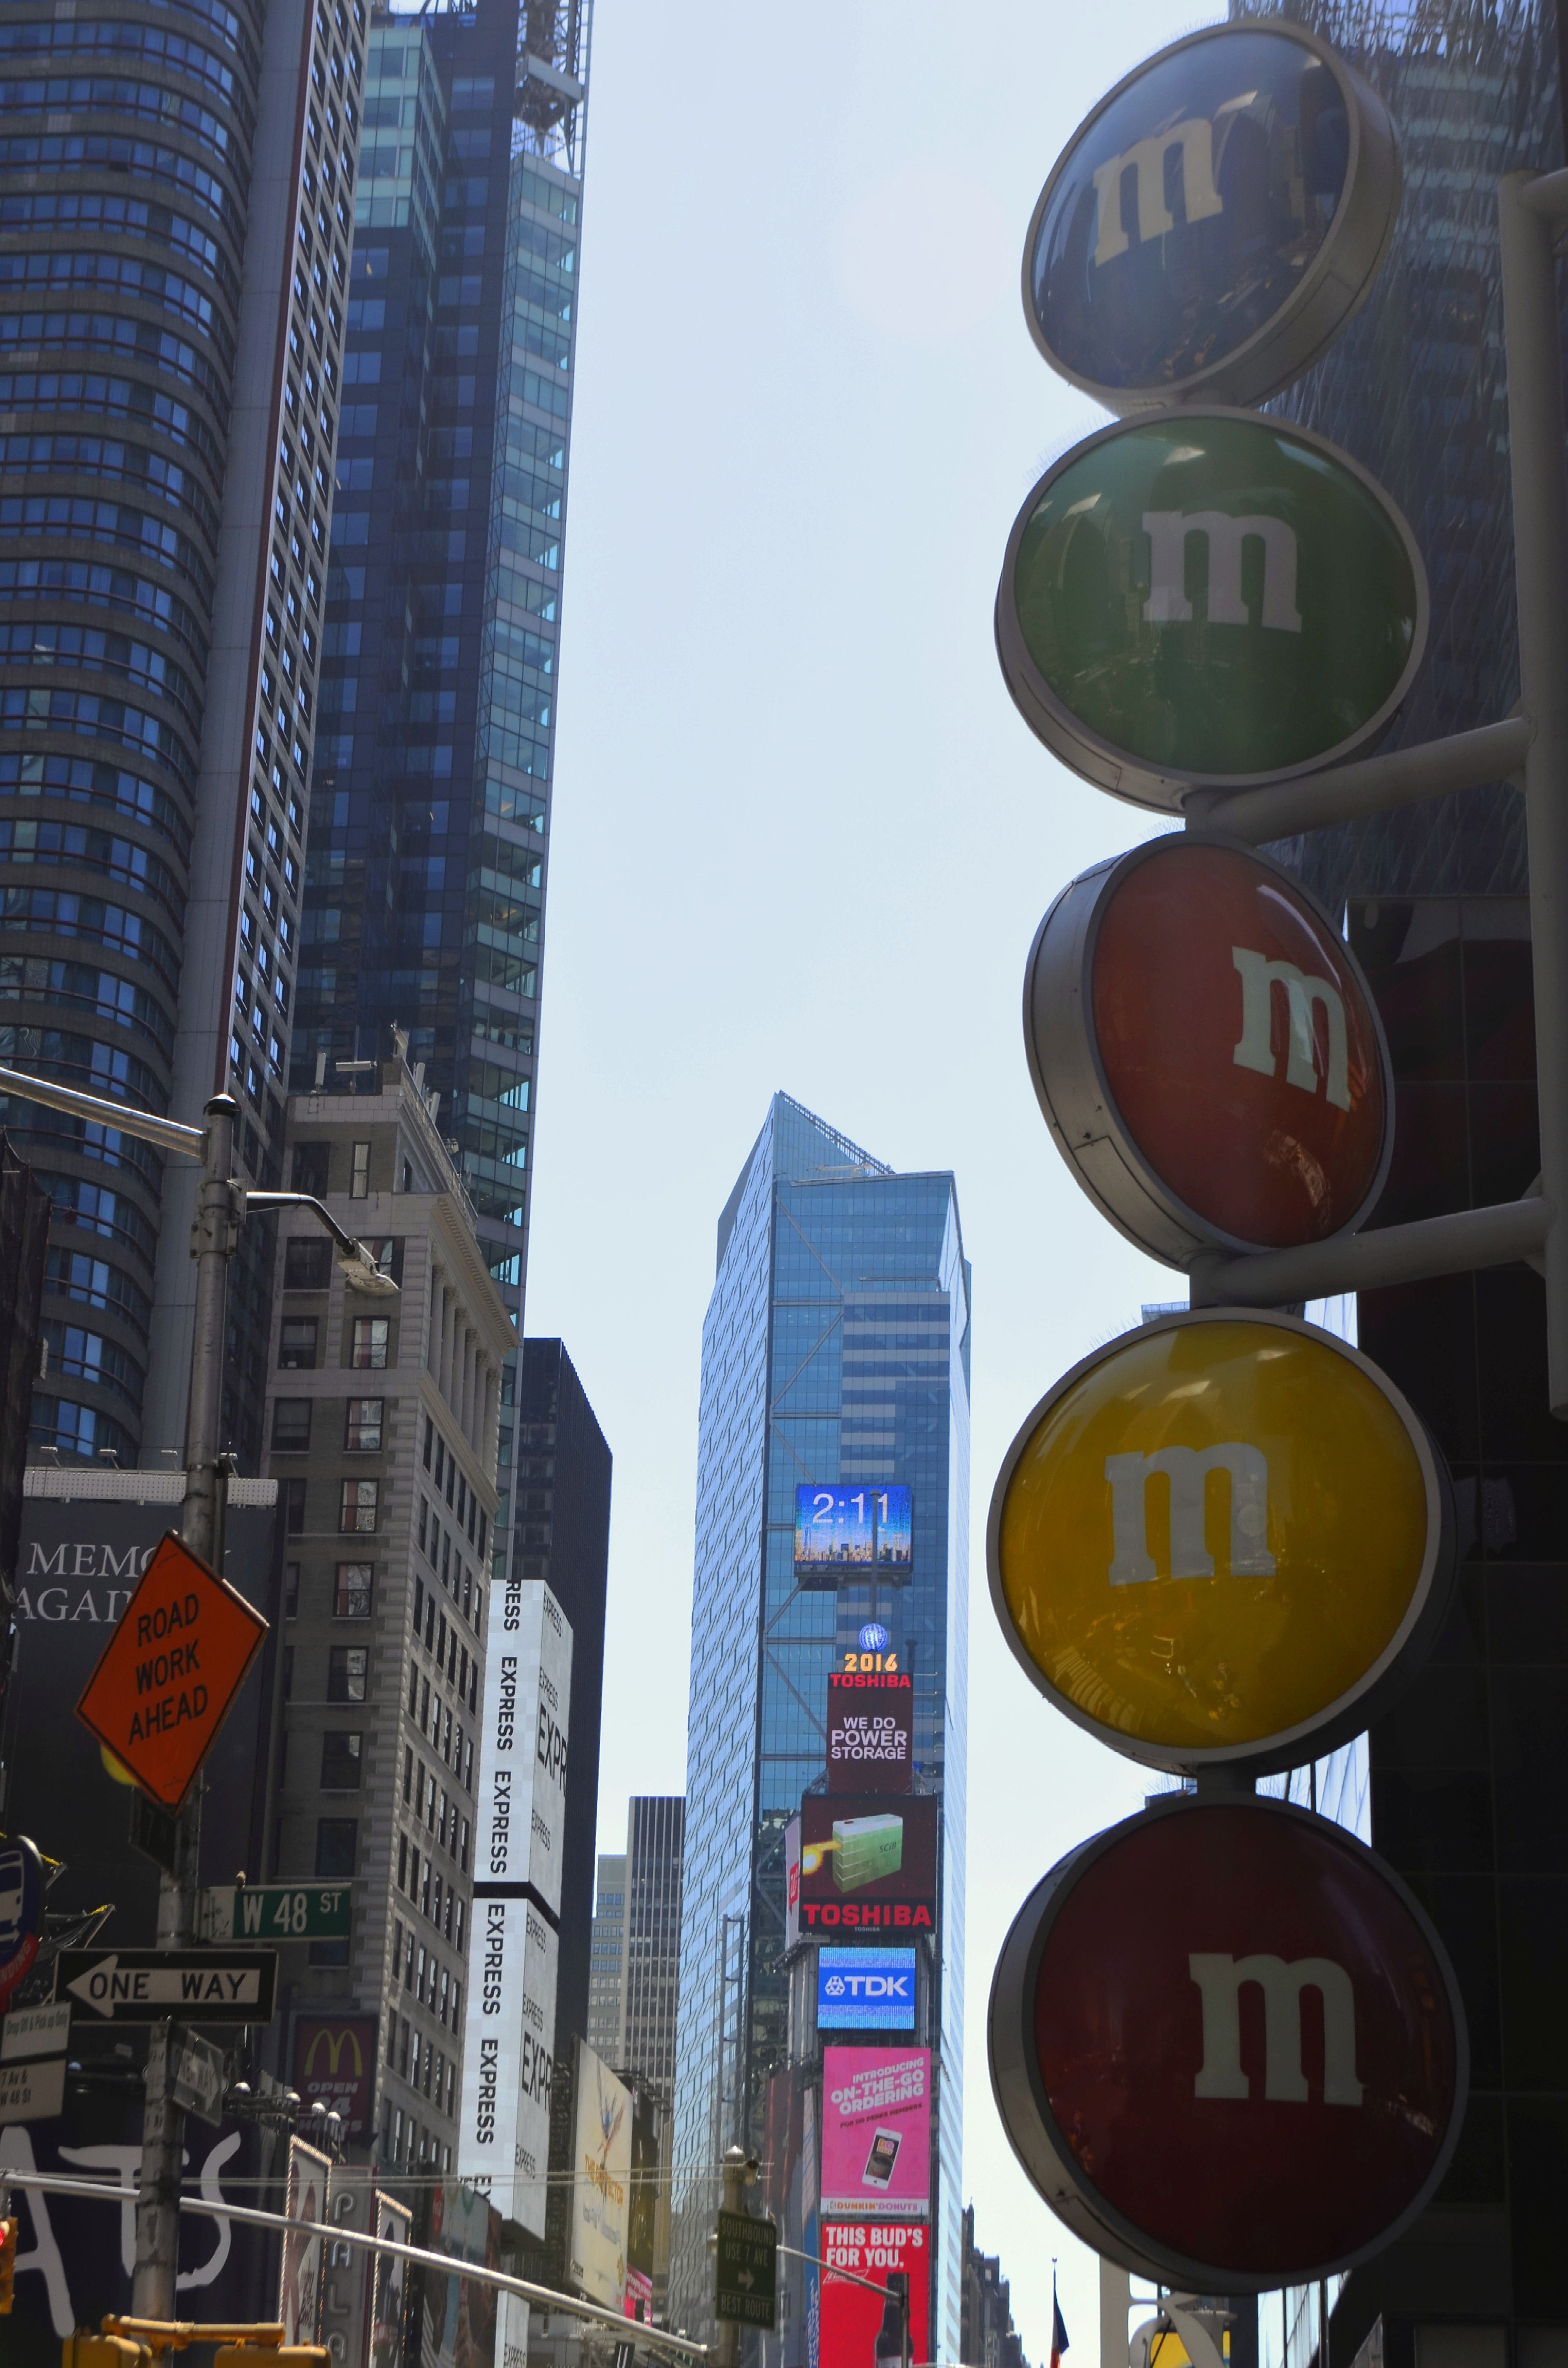 M&M Store NY, Times Square New York City, Sehenswürdigkeiten Manhattan, top 10 sehenswürdigkeiten, travelguide new york, travelblog, travel, lifestyleblog, blogger © ceyourgoals 2016